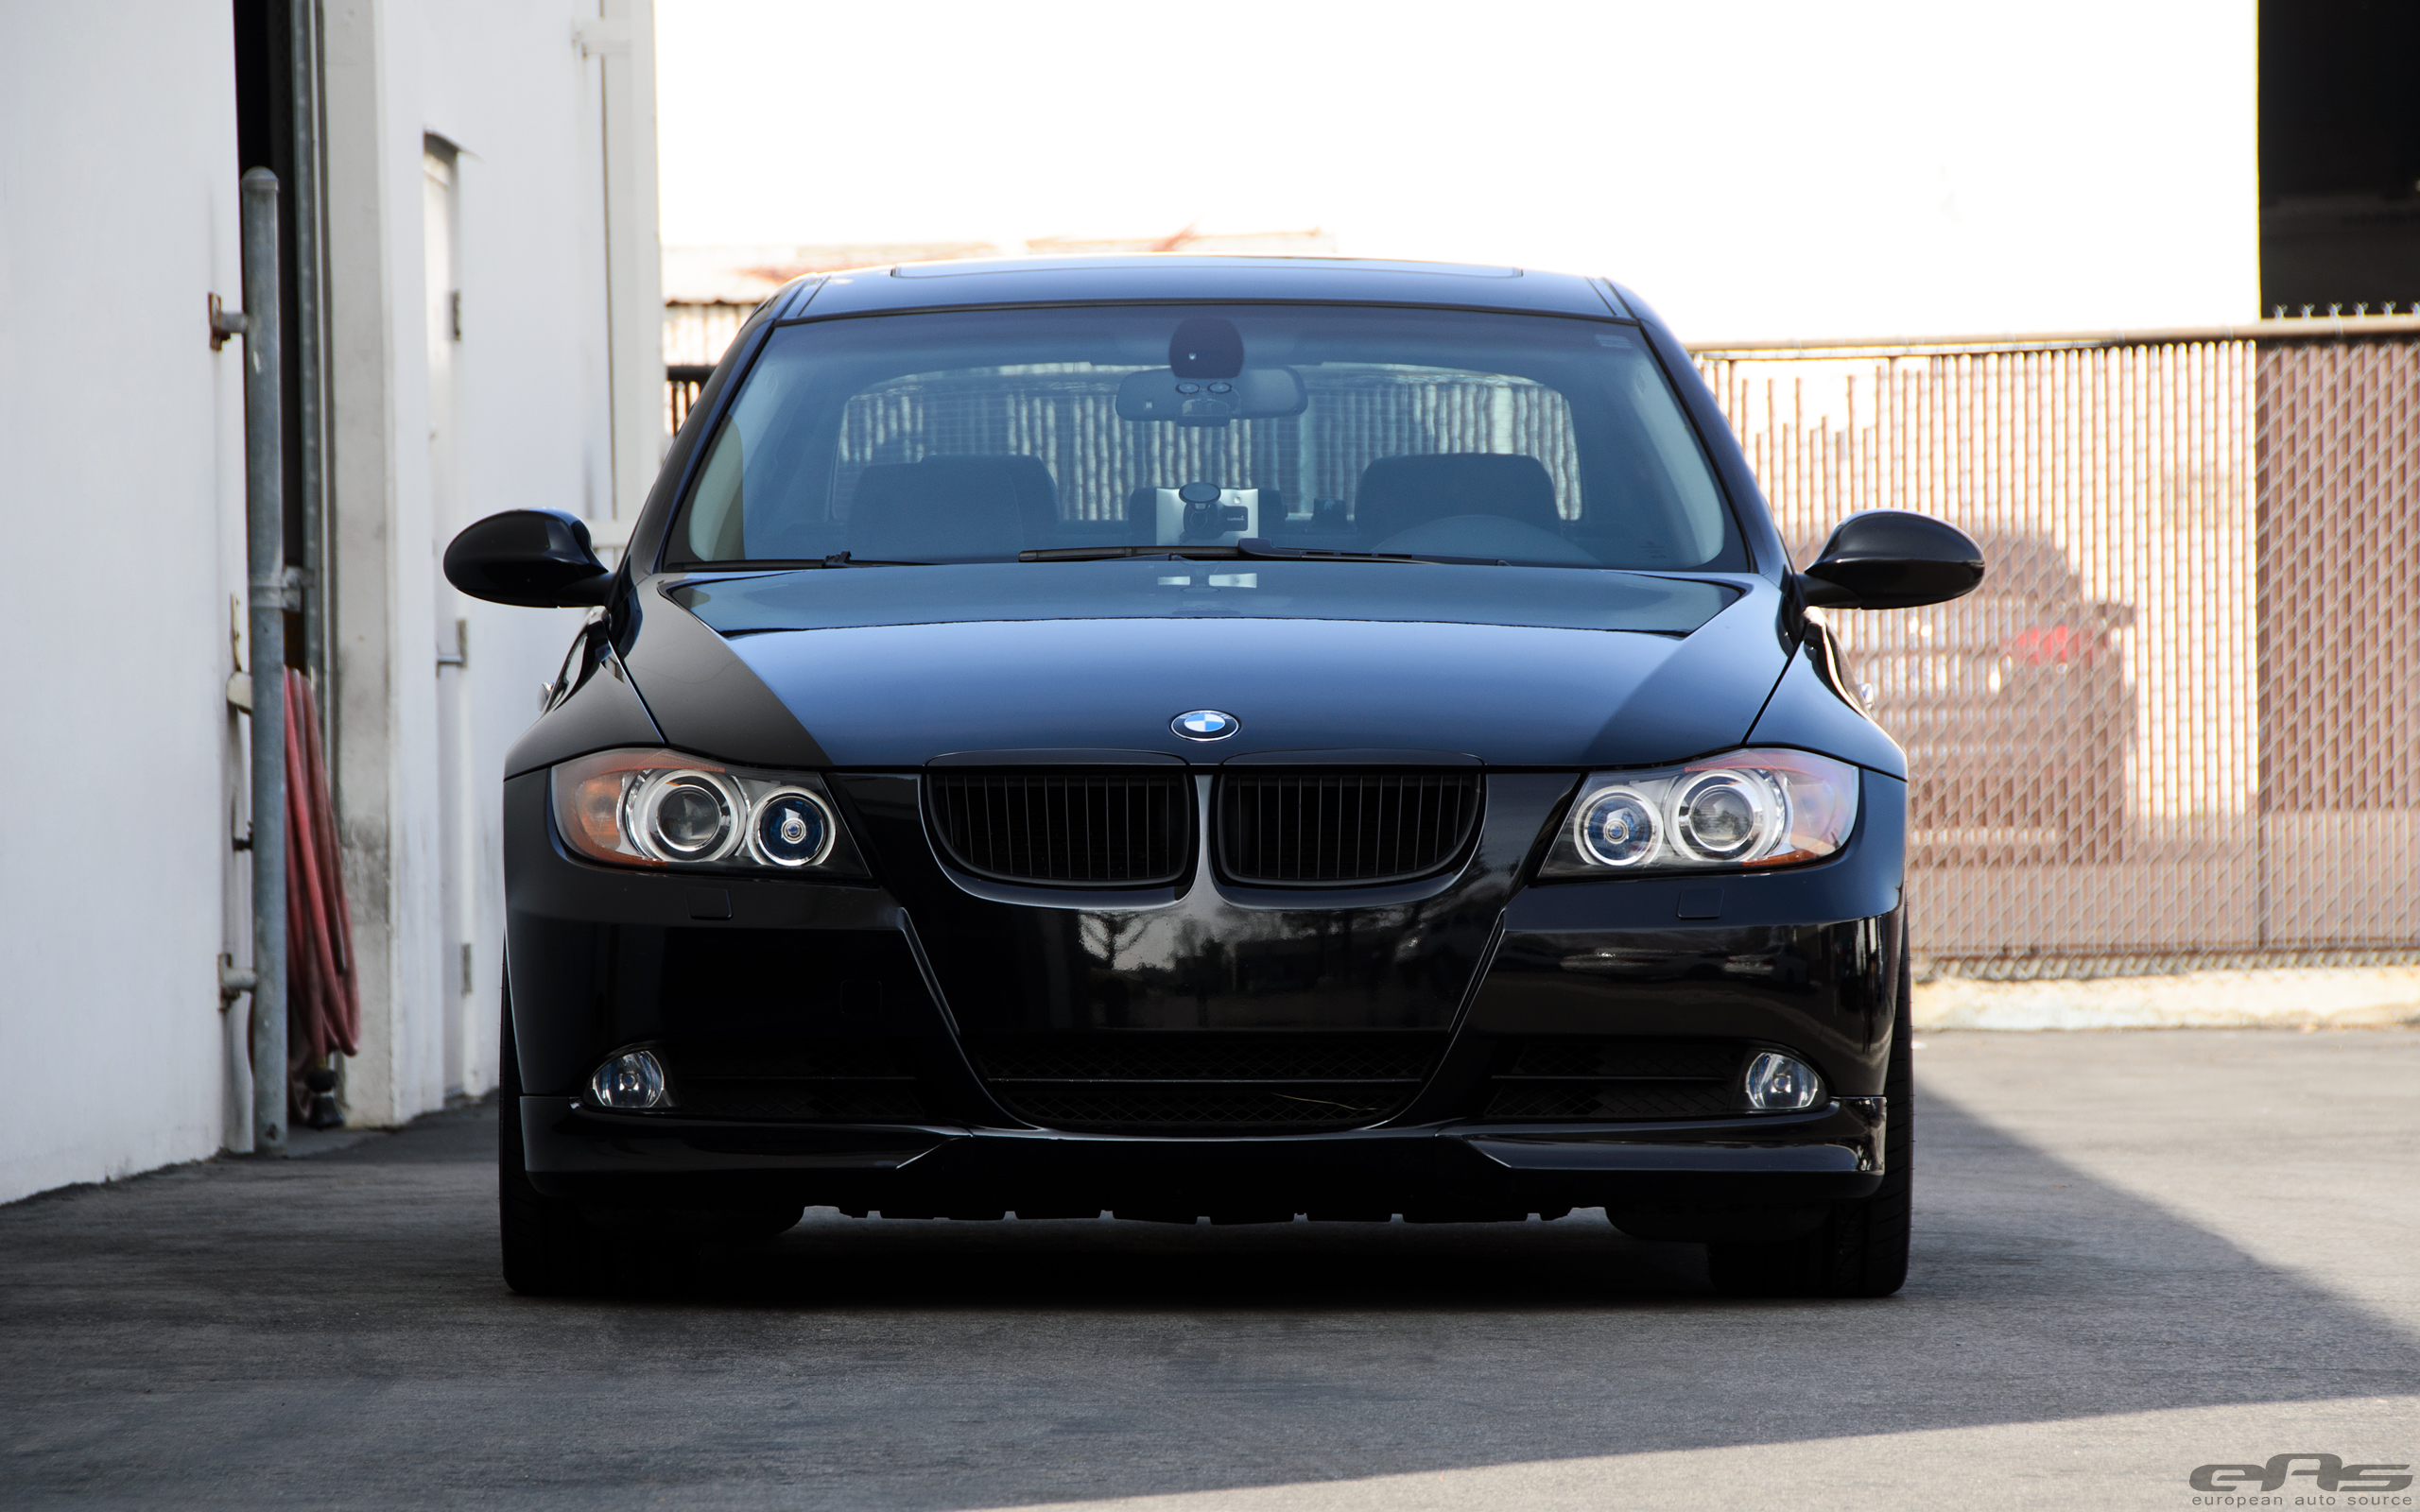 Jet Black BMW E90 335i Looks Clean With Aftermarket Wheels 5